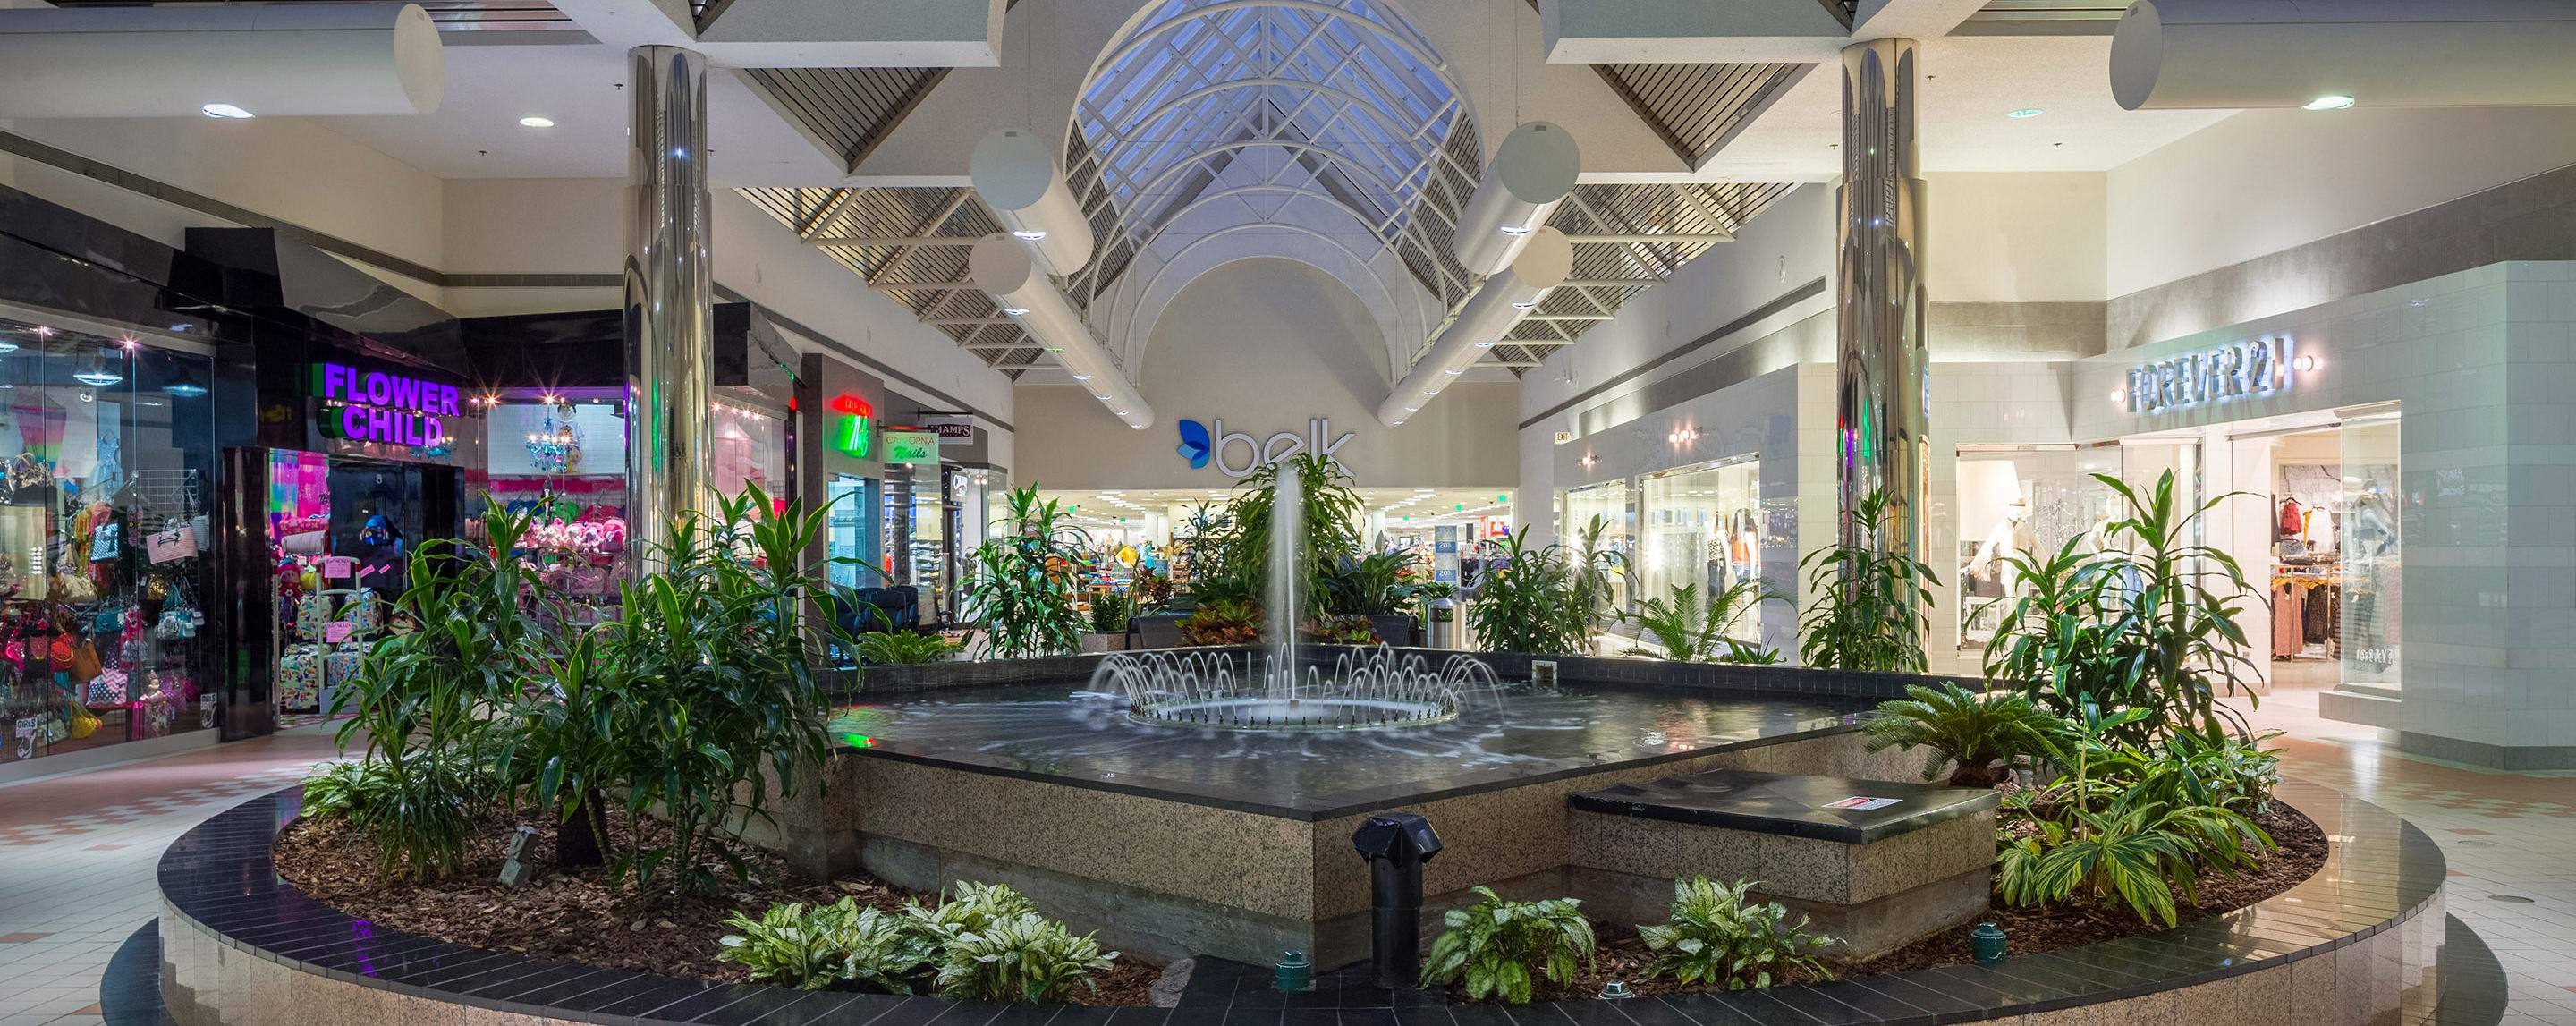 In A Common Area Of Pecanland Mall Running Fountain With Plants Is Surrounded By